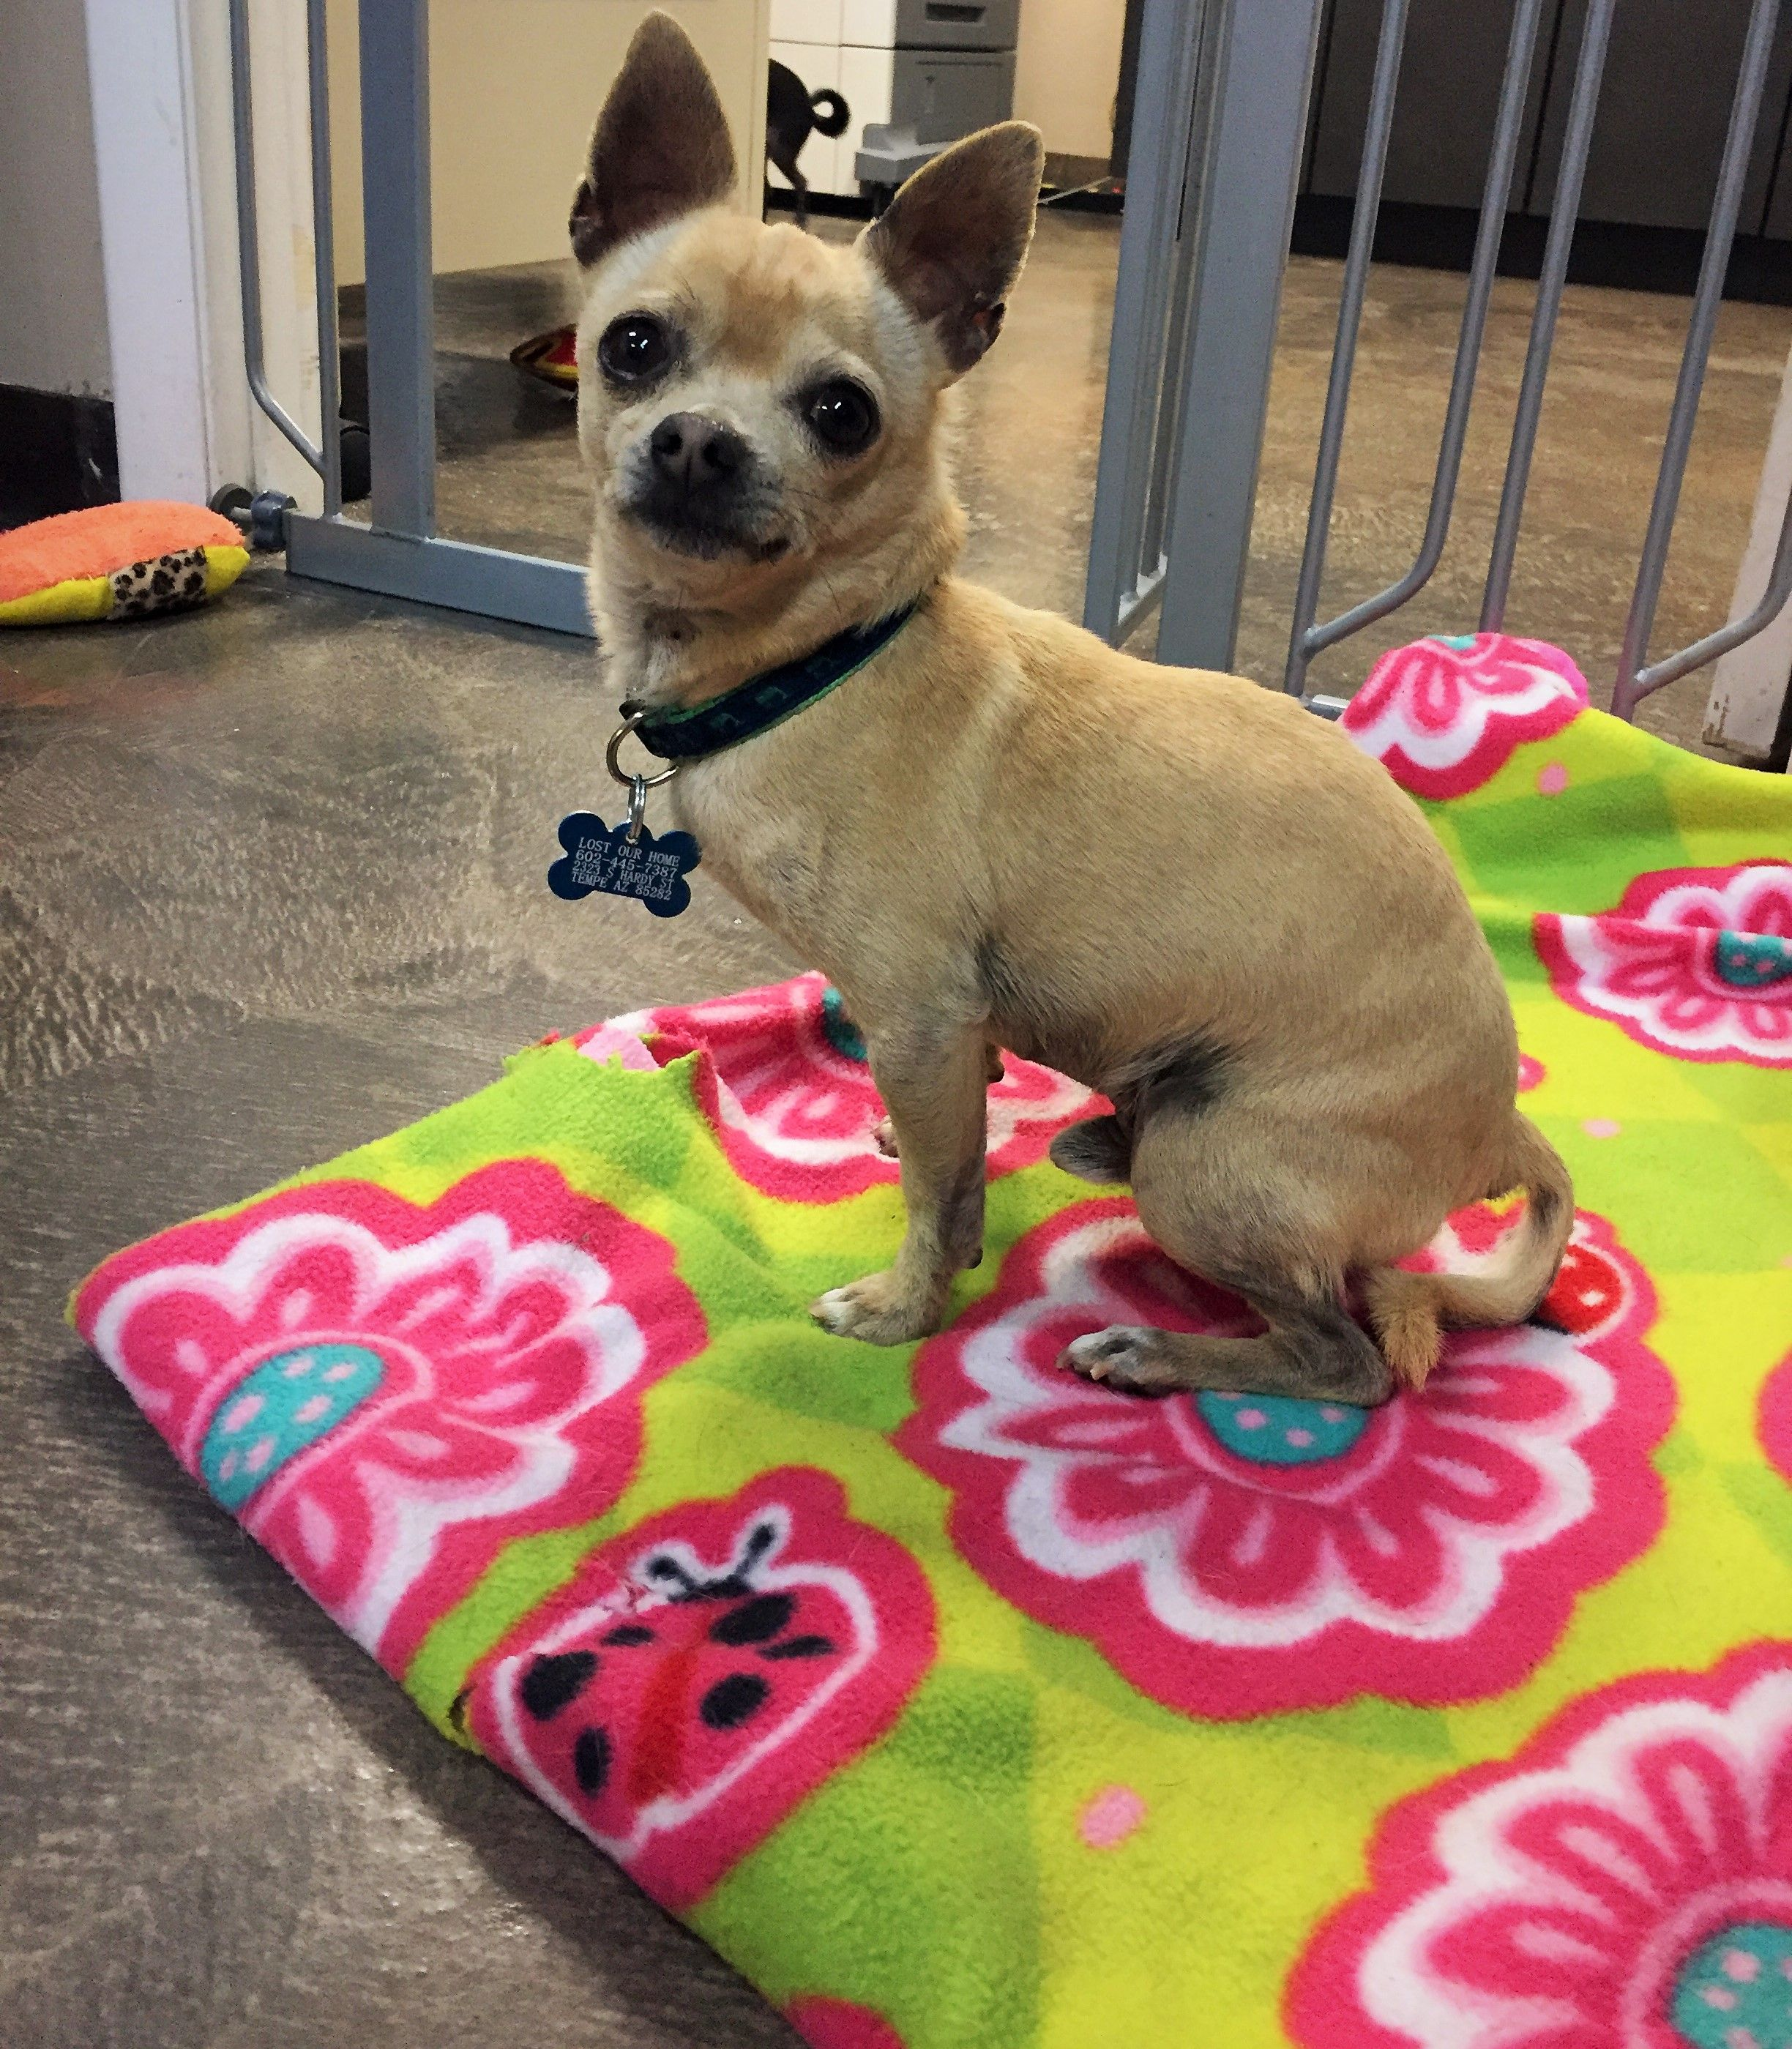 Chihuahua Dog For Adoption In Tempe Az Adn 825075 On Puppyfinder Com Gender Male Age Adult Dog Adoption Chihuahua Chihuahua Dogs